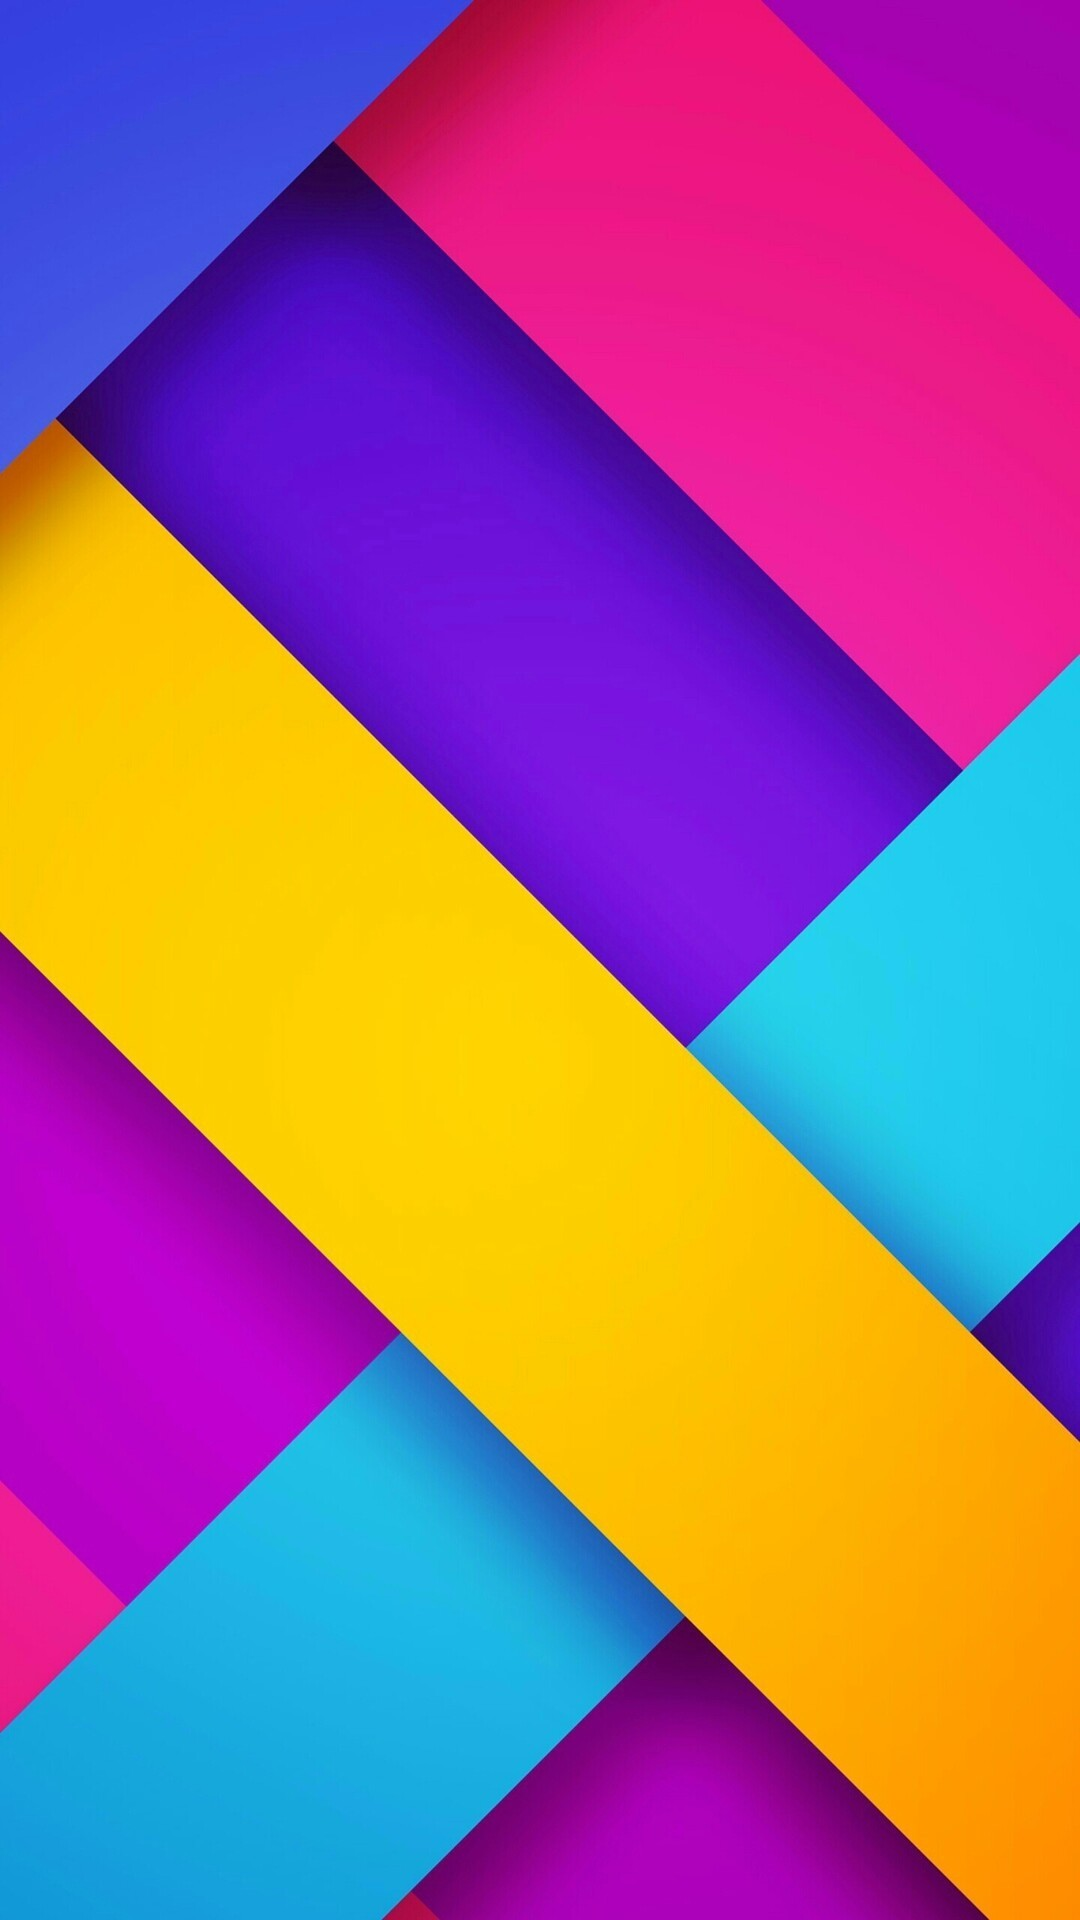 Hd colorful wallpapers 67 background pictures - Geometric wallpaper colorful ...